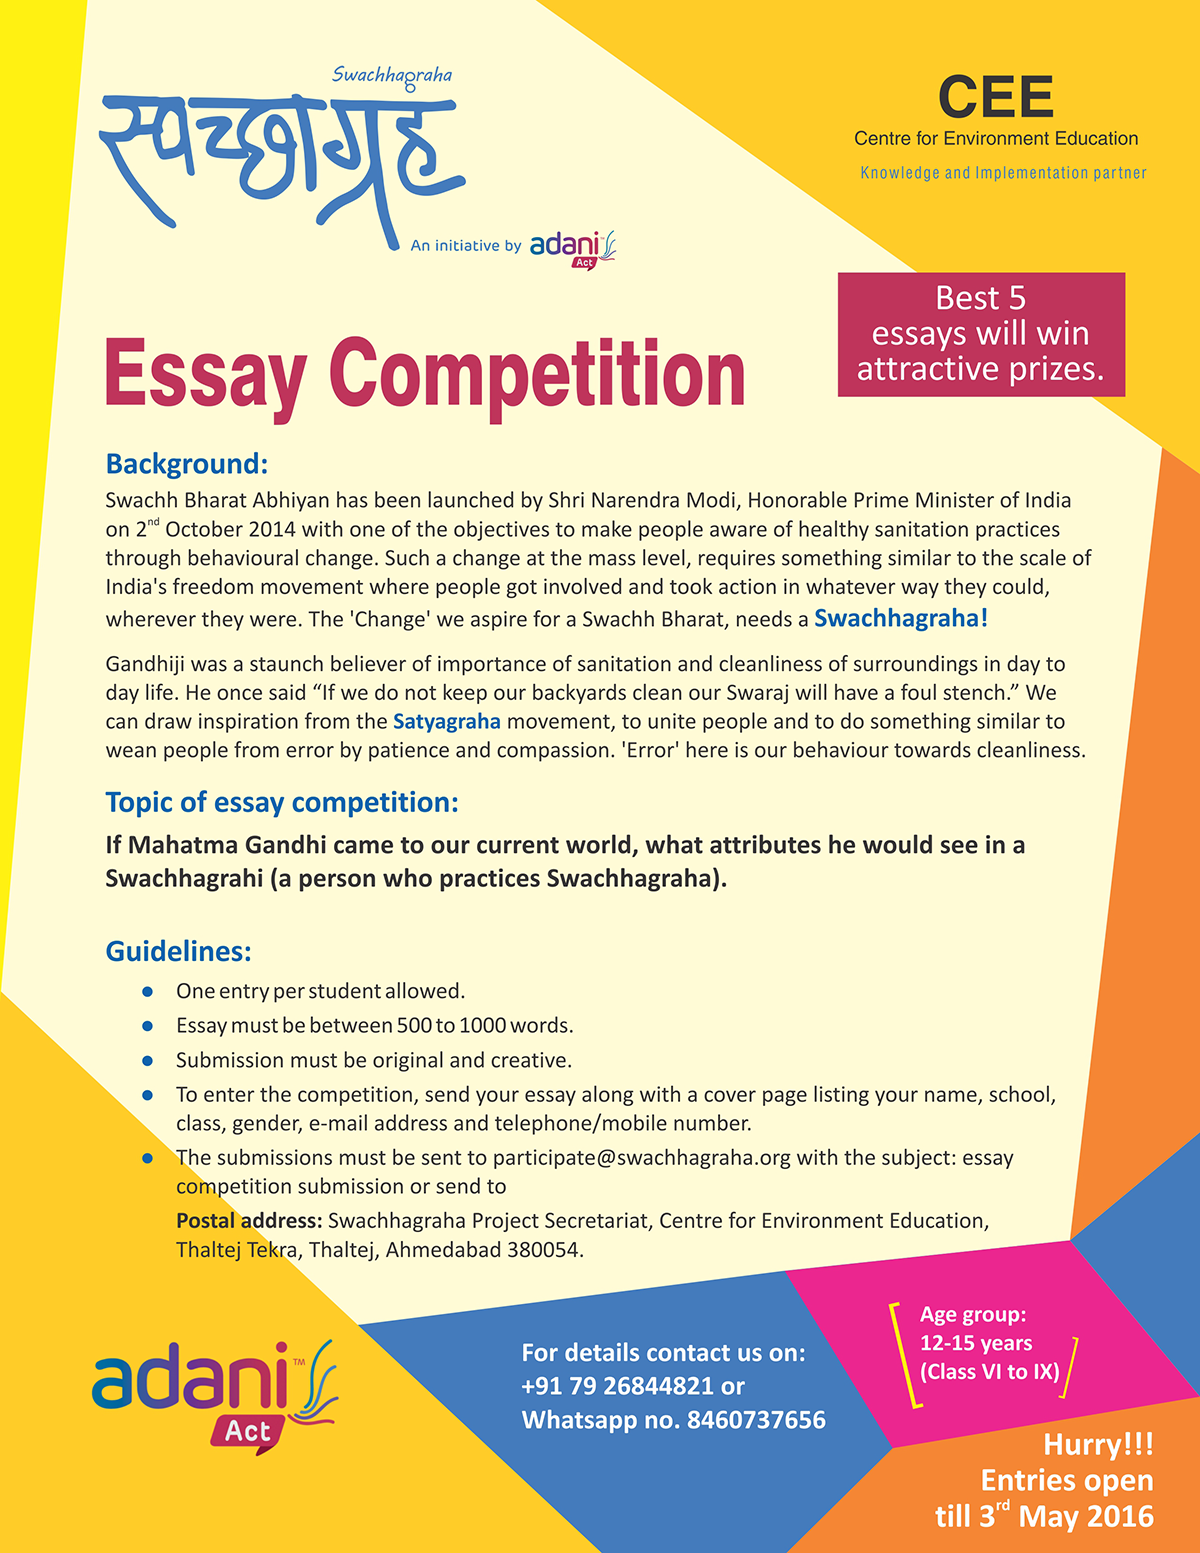 011 20180129171946essay20competition Essay About Cleanliness In School Phenomenal On Premises Toilets Writing Full